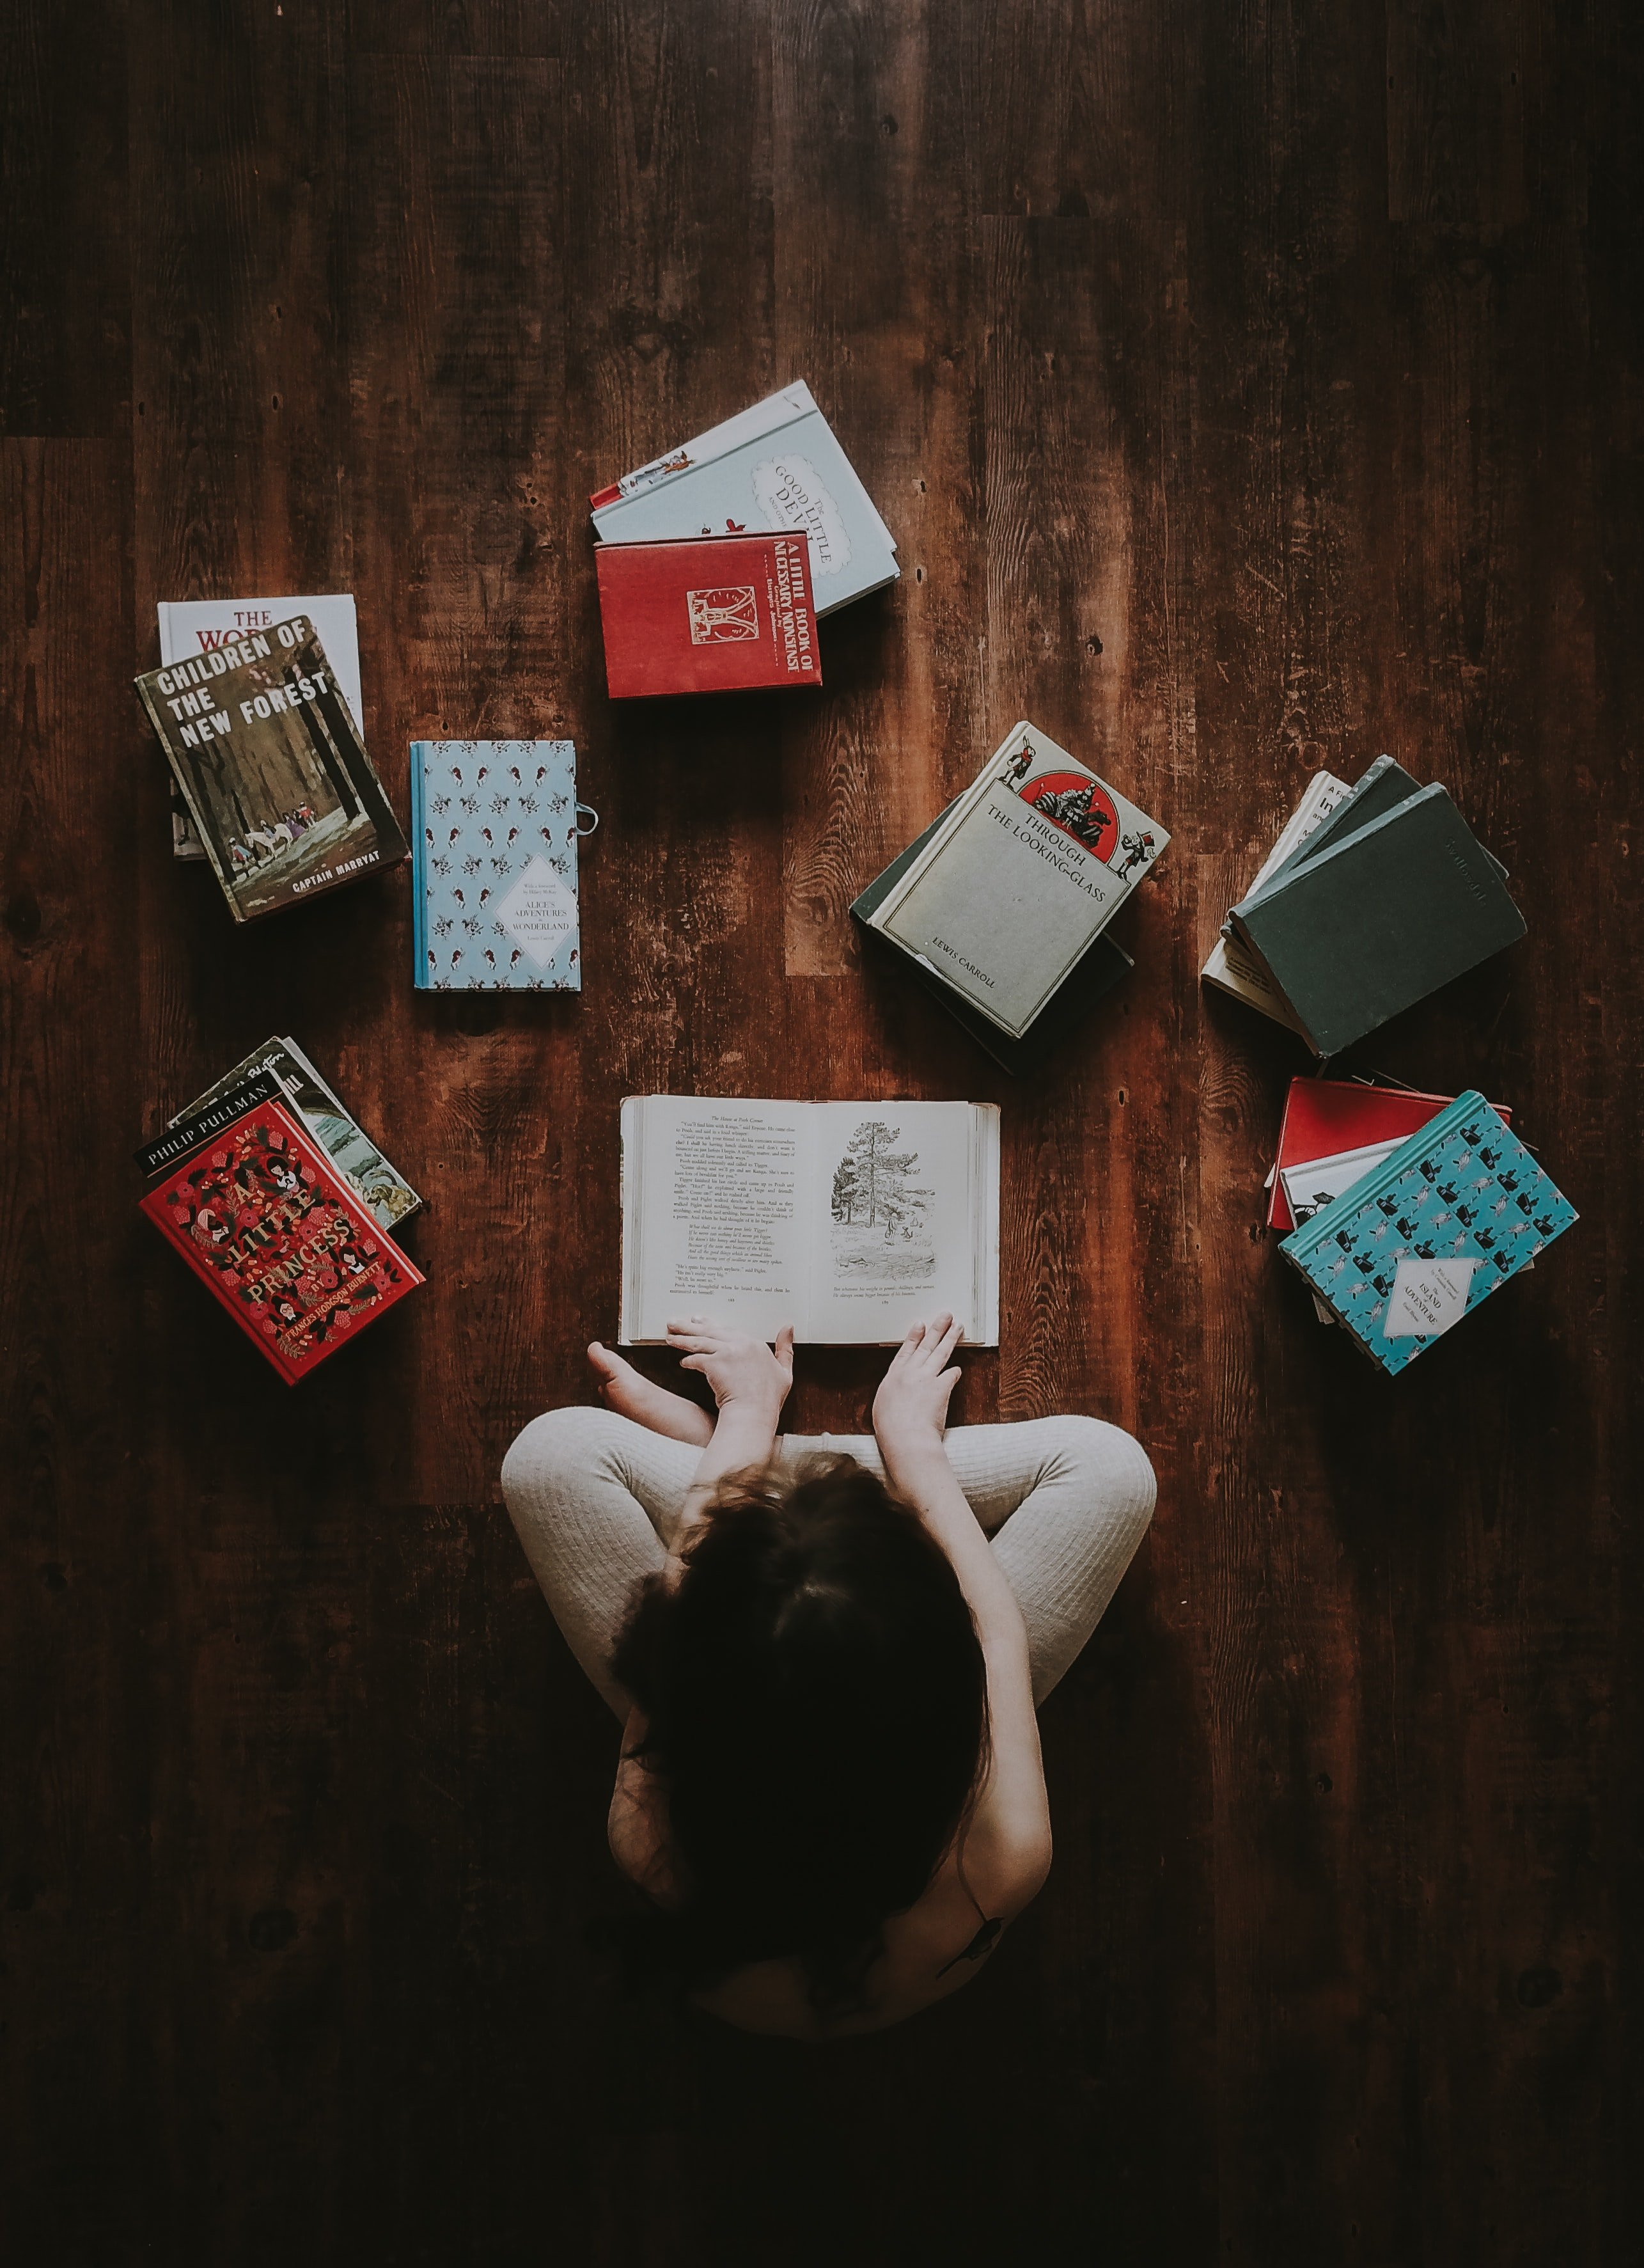 Boy sitting on the floor with books | Source: Unsplash